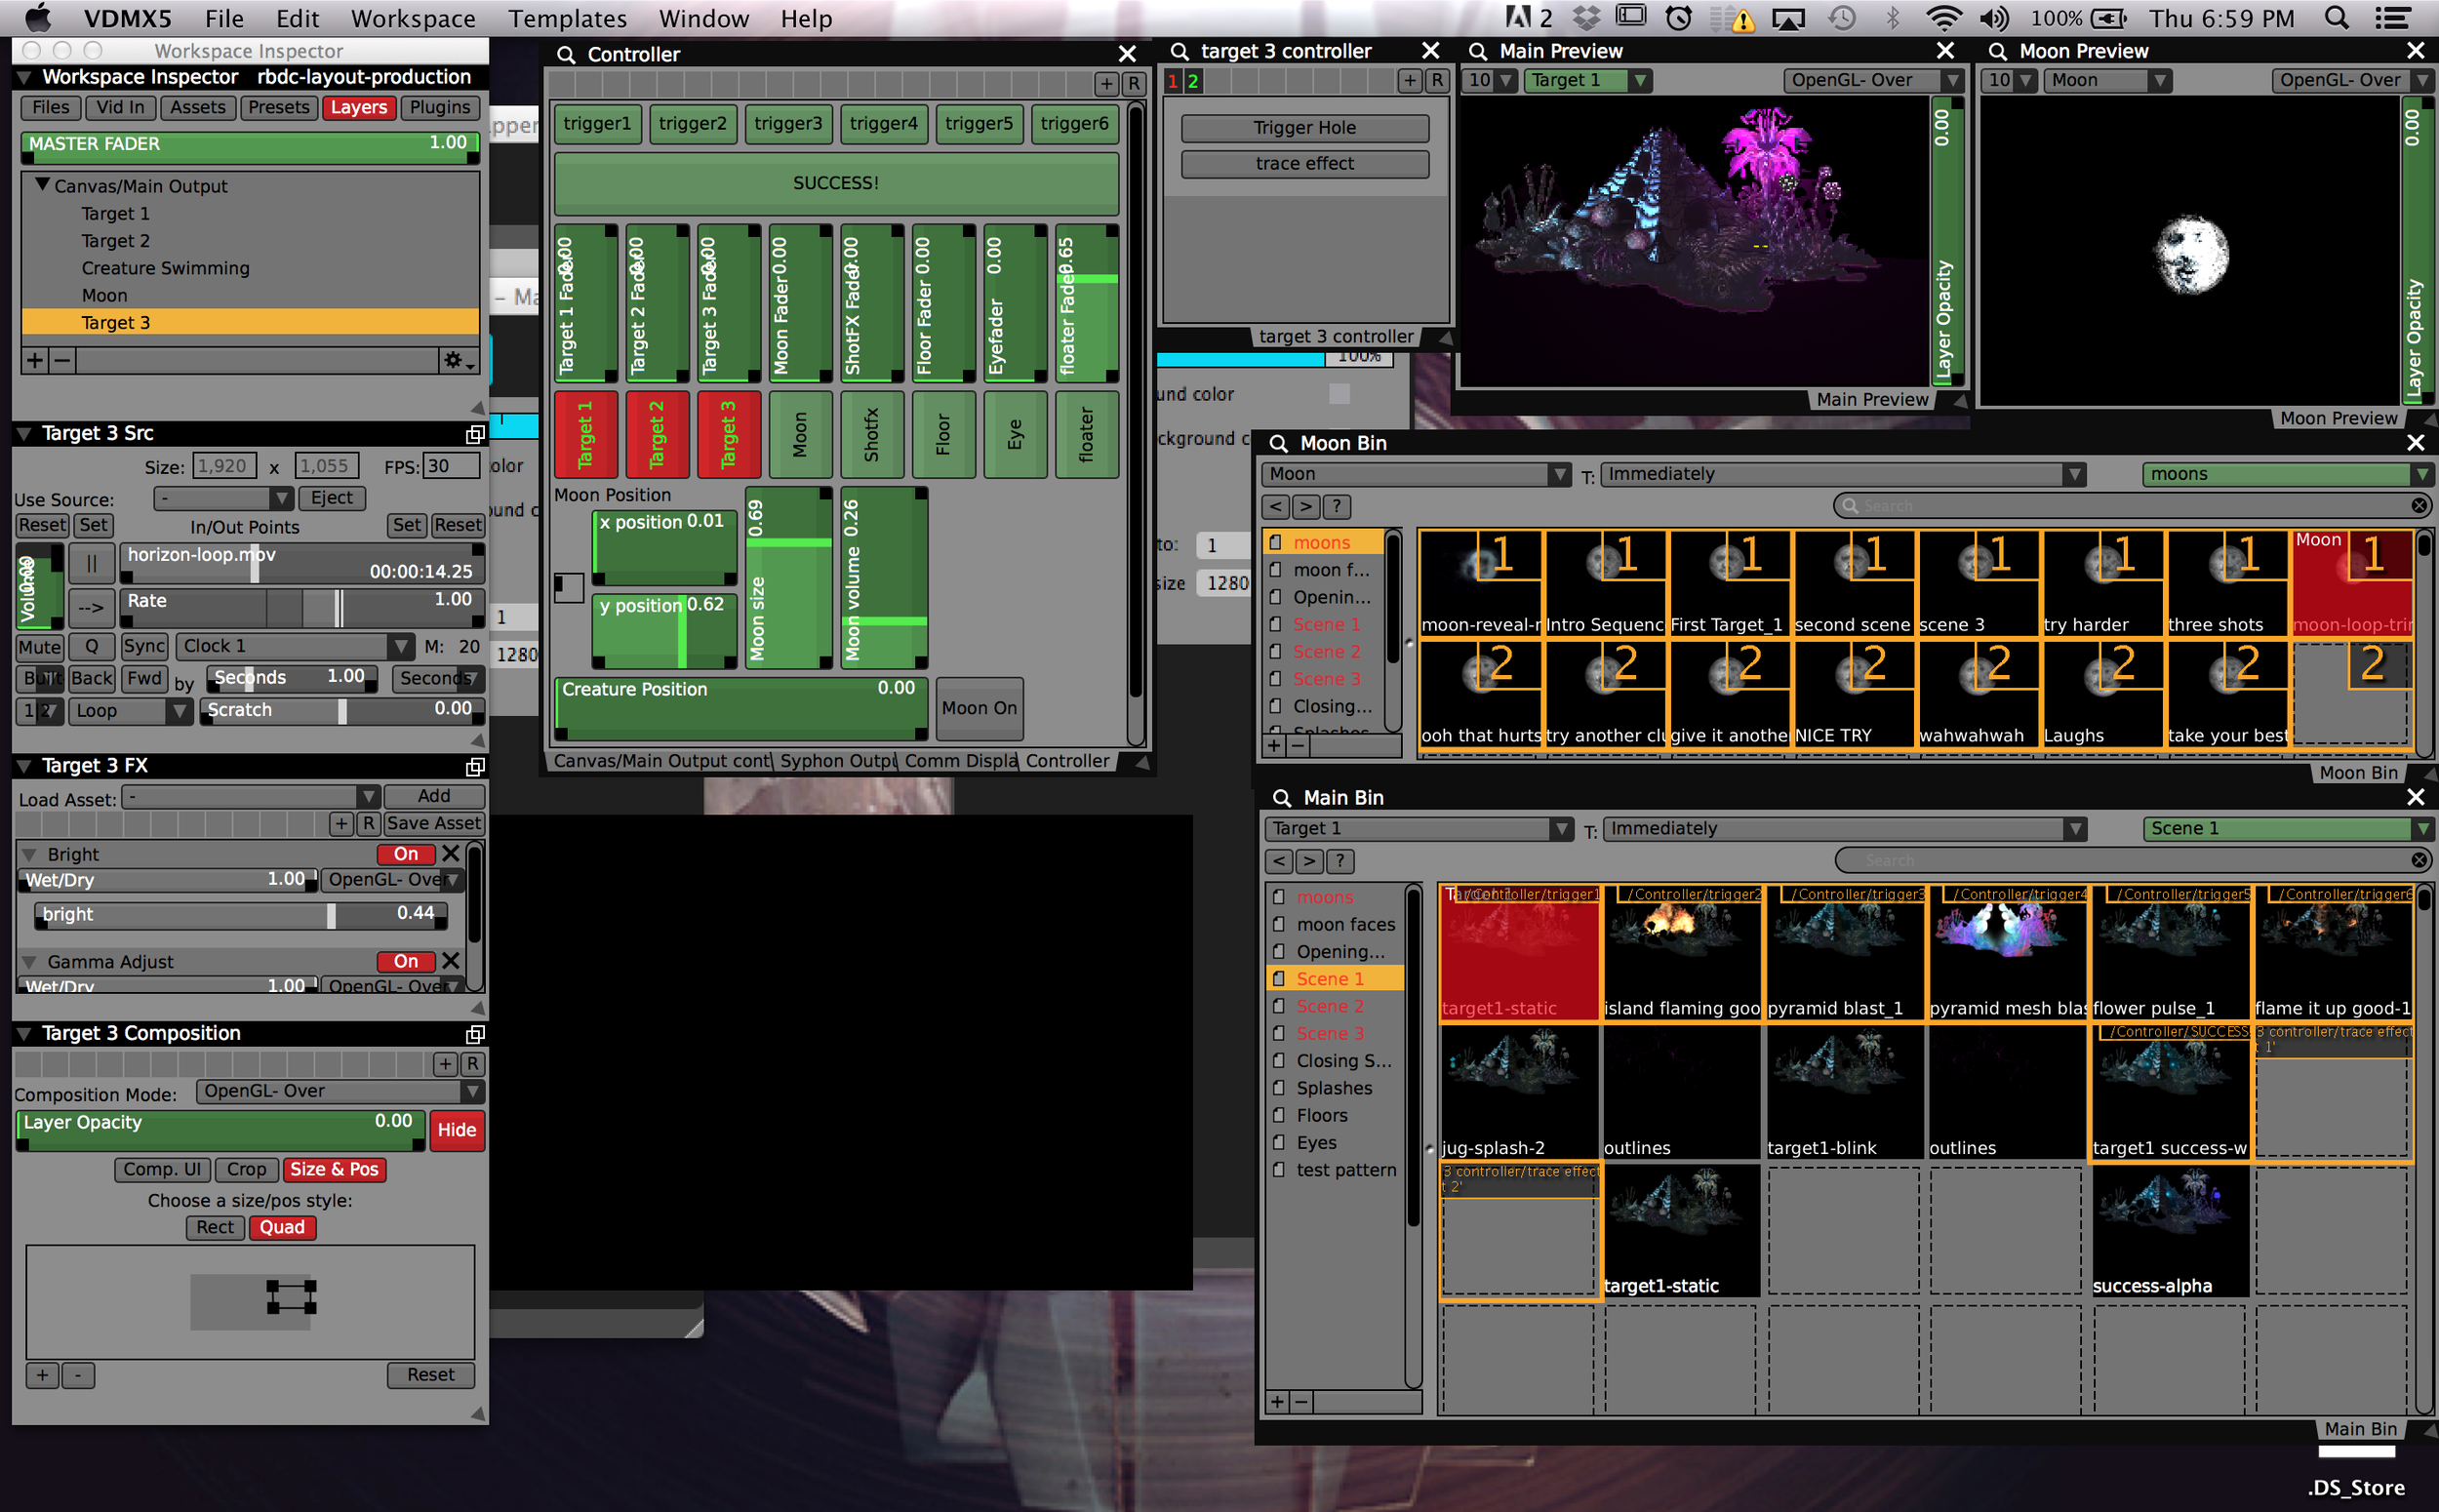 Sliders and buttons from TouchOSC mapped to clips and playback controls in VDMX